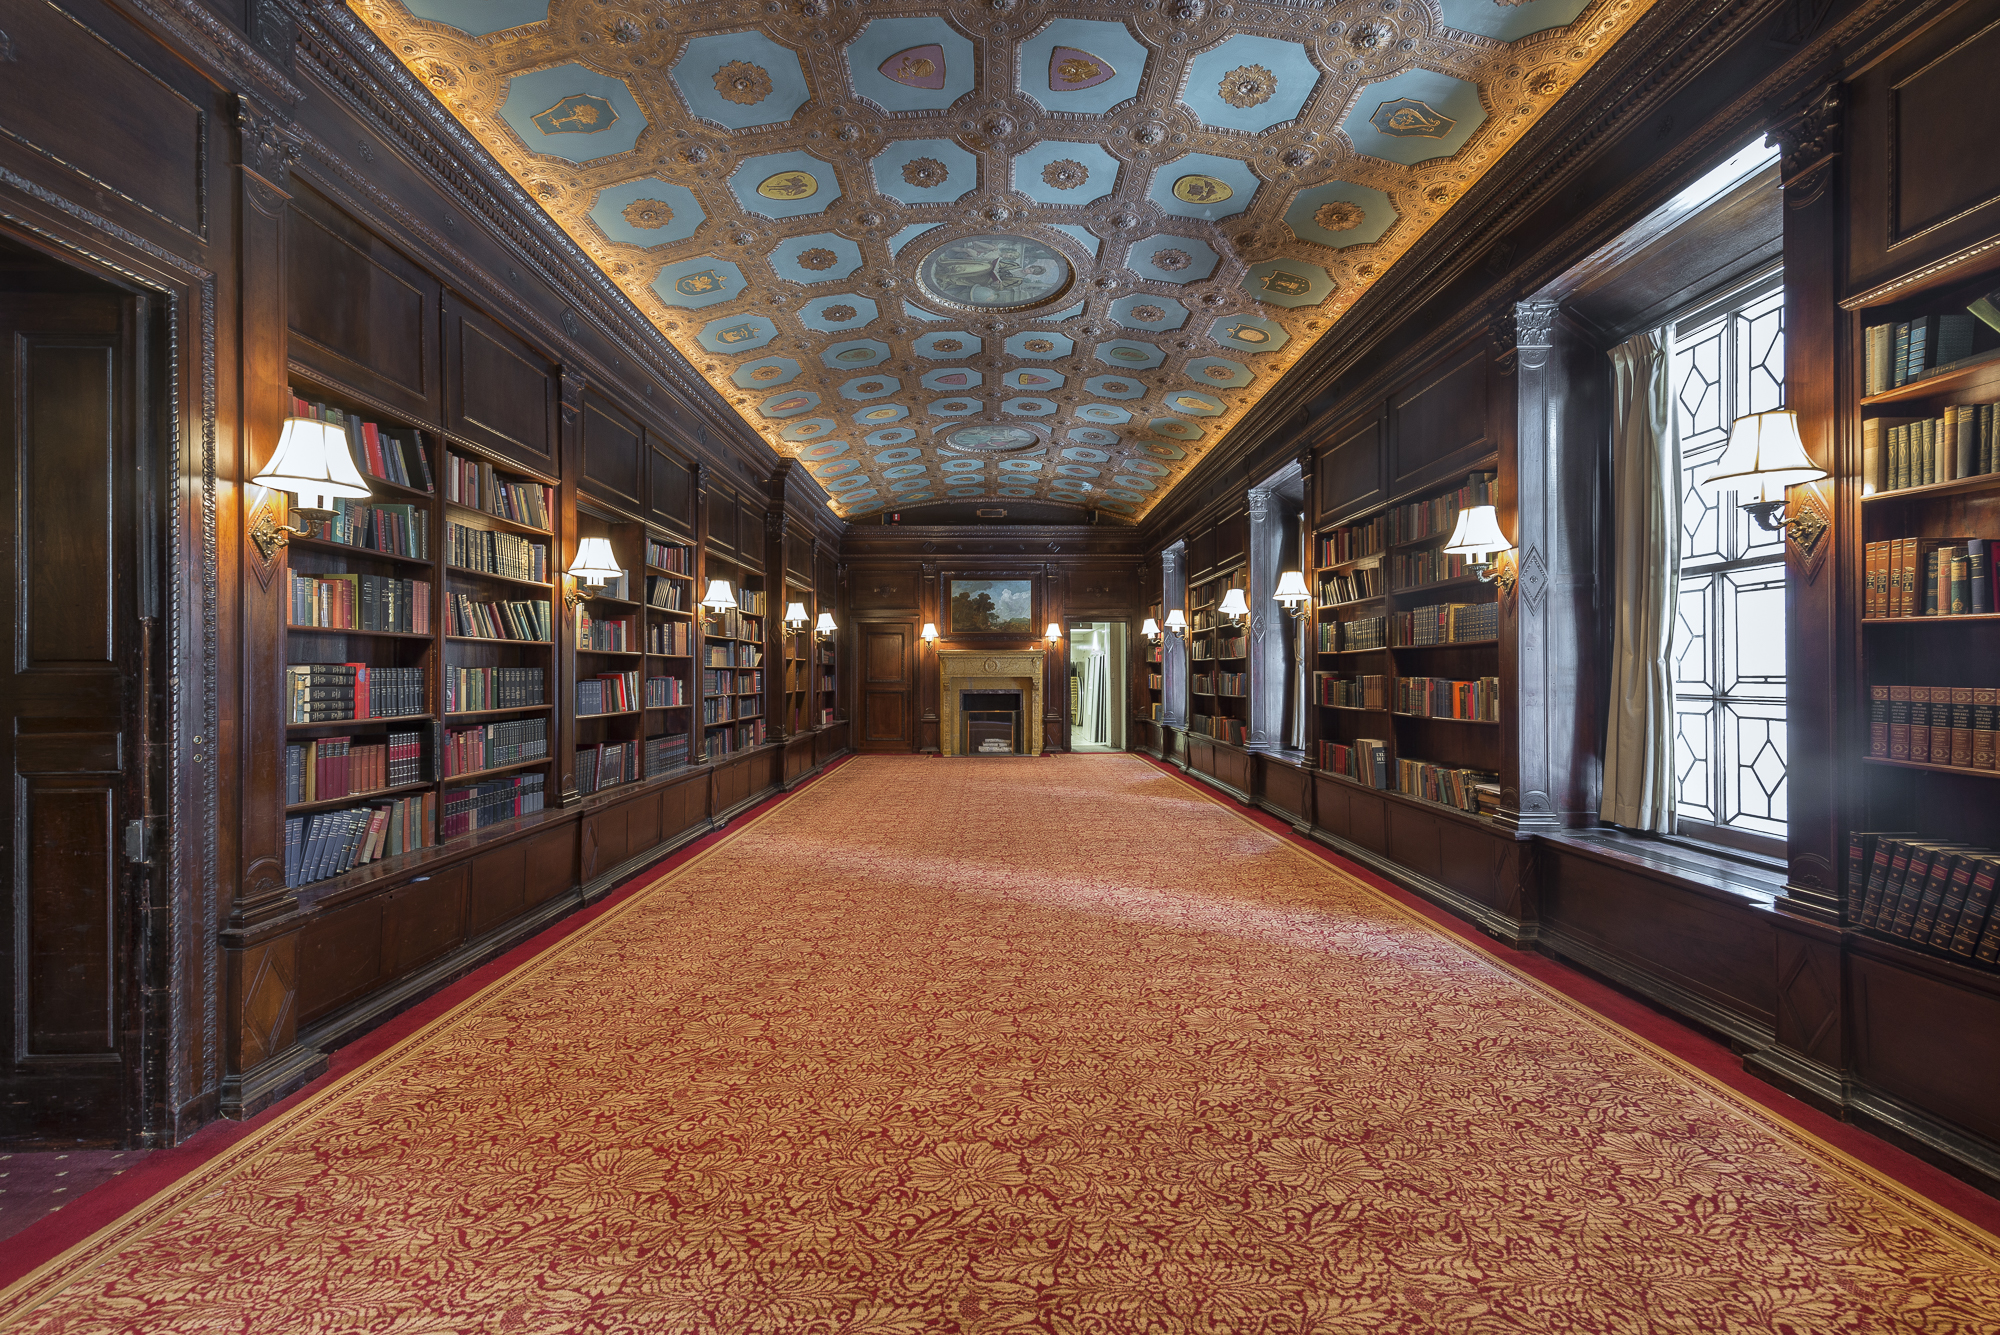 villard mansion, library